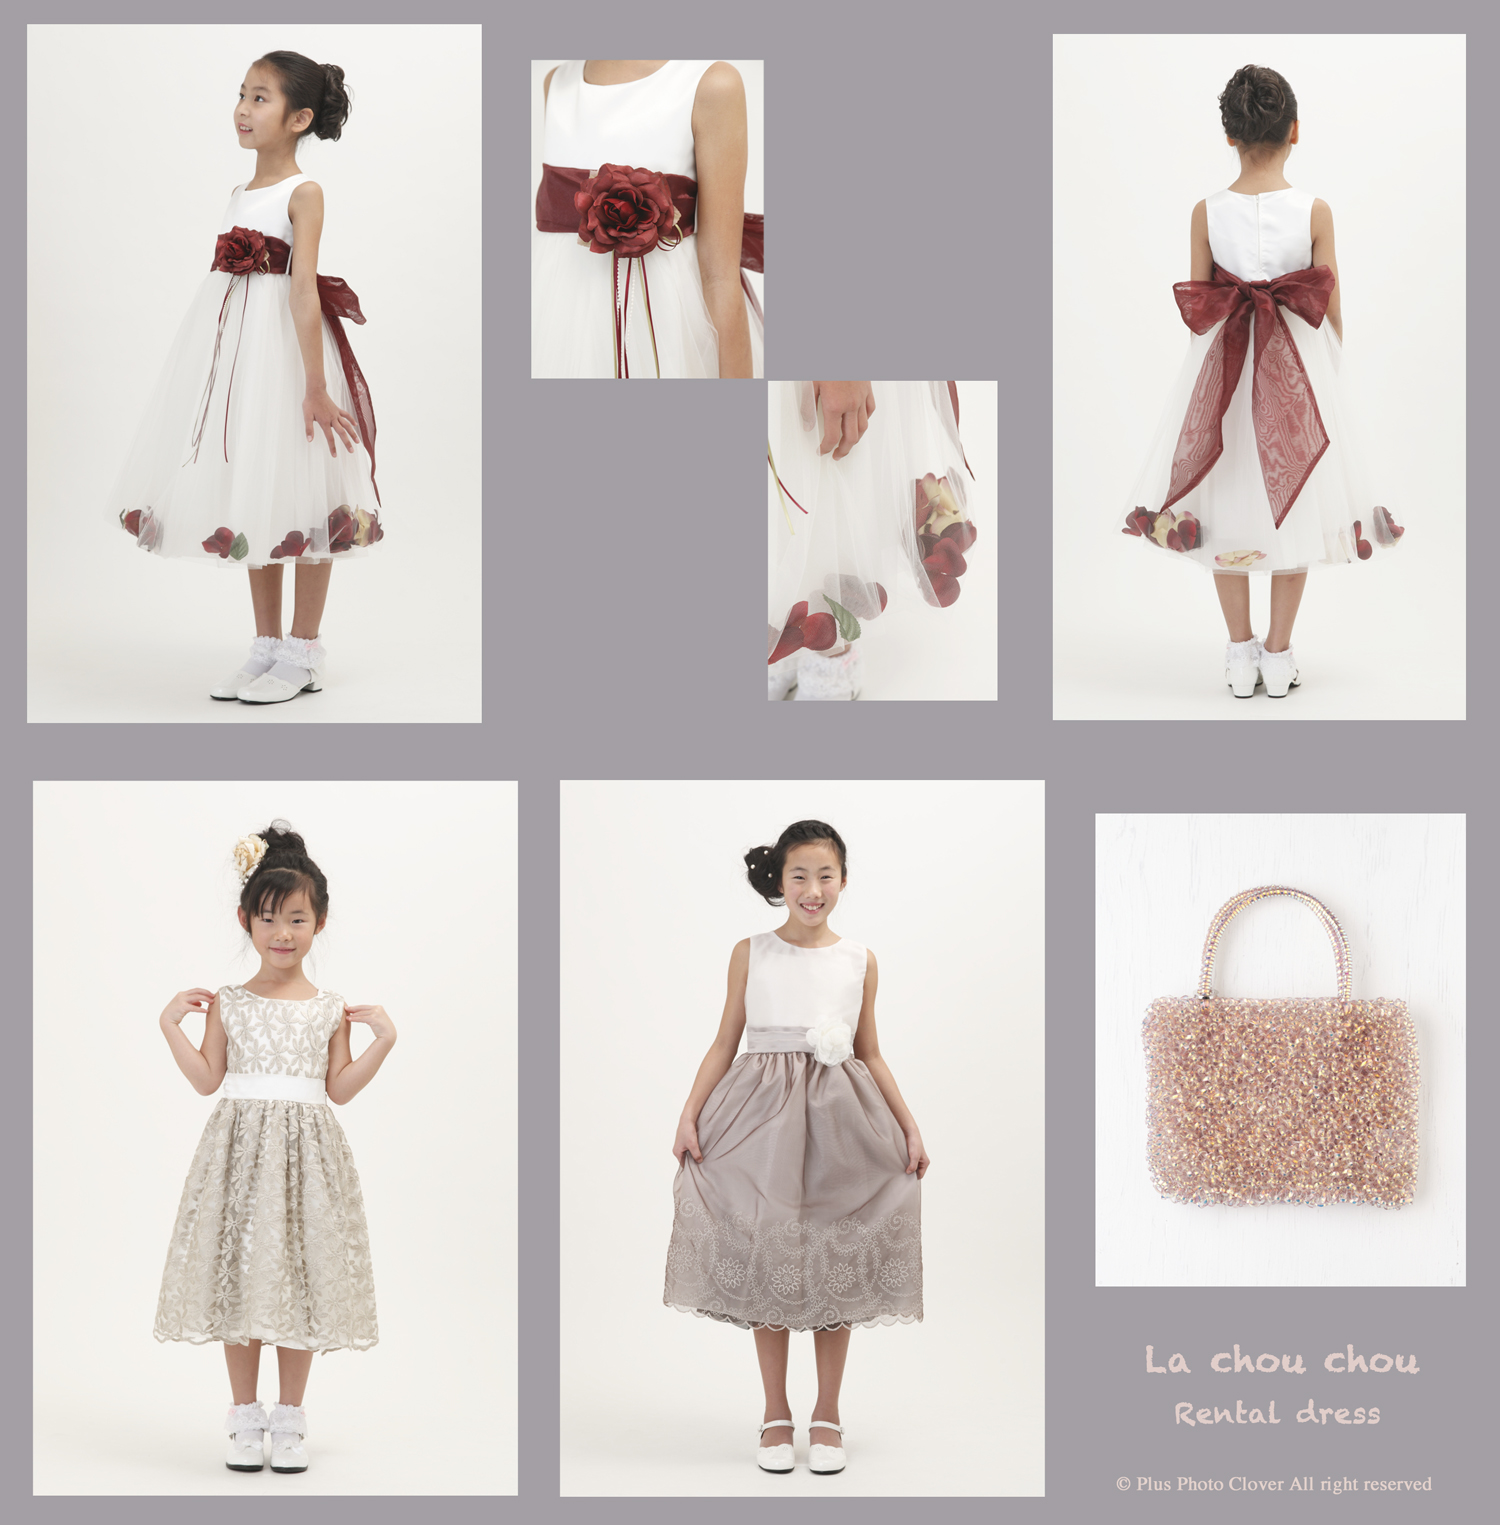 La chou chou rental dress